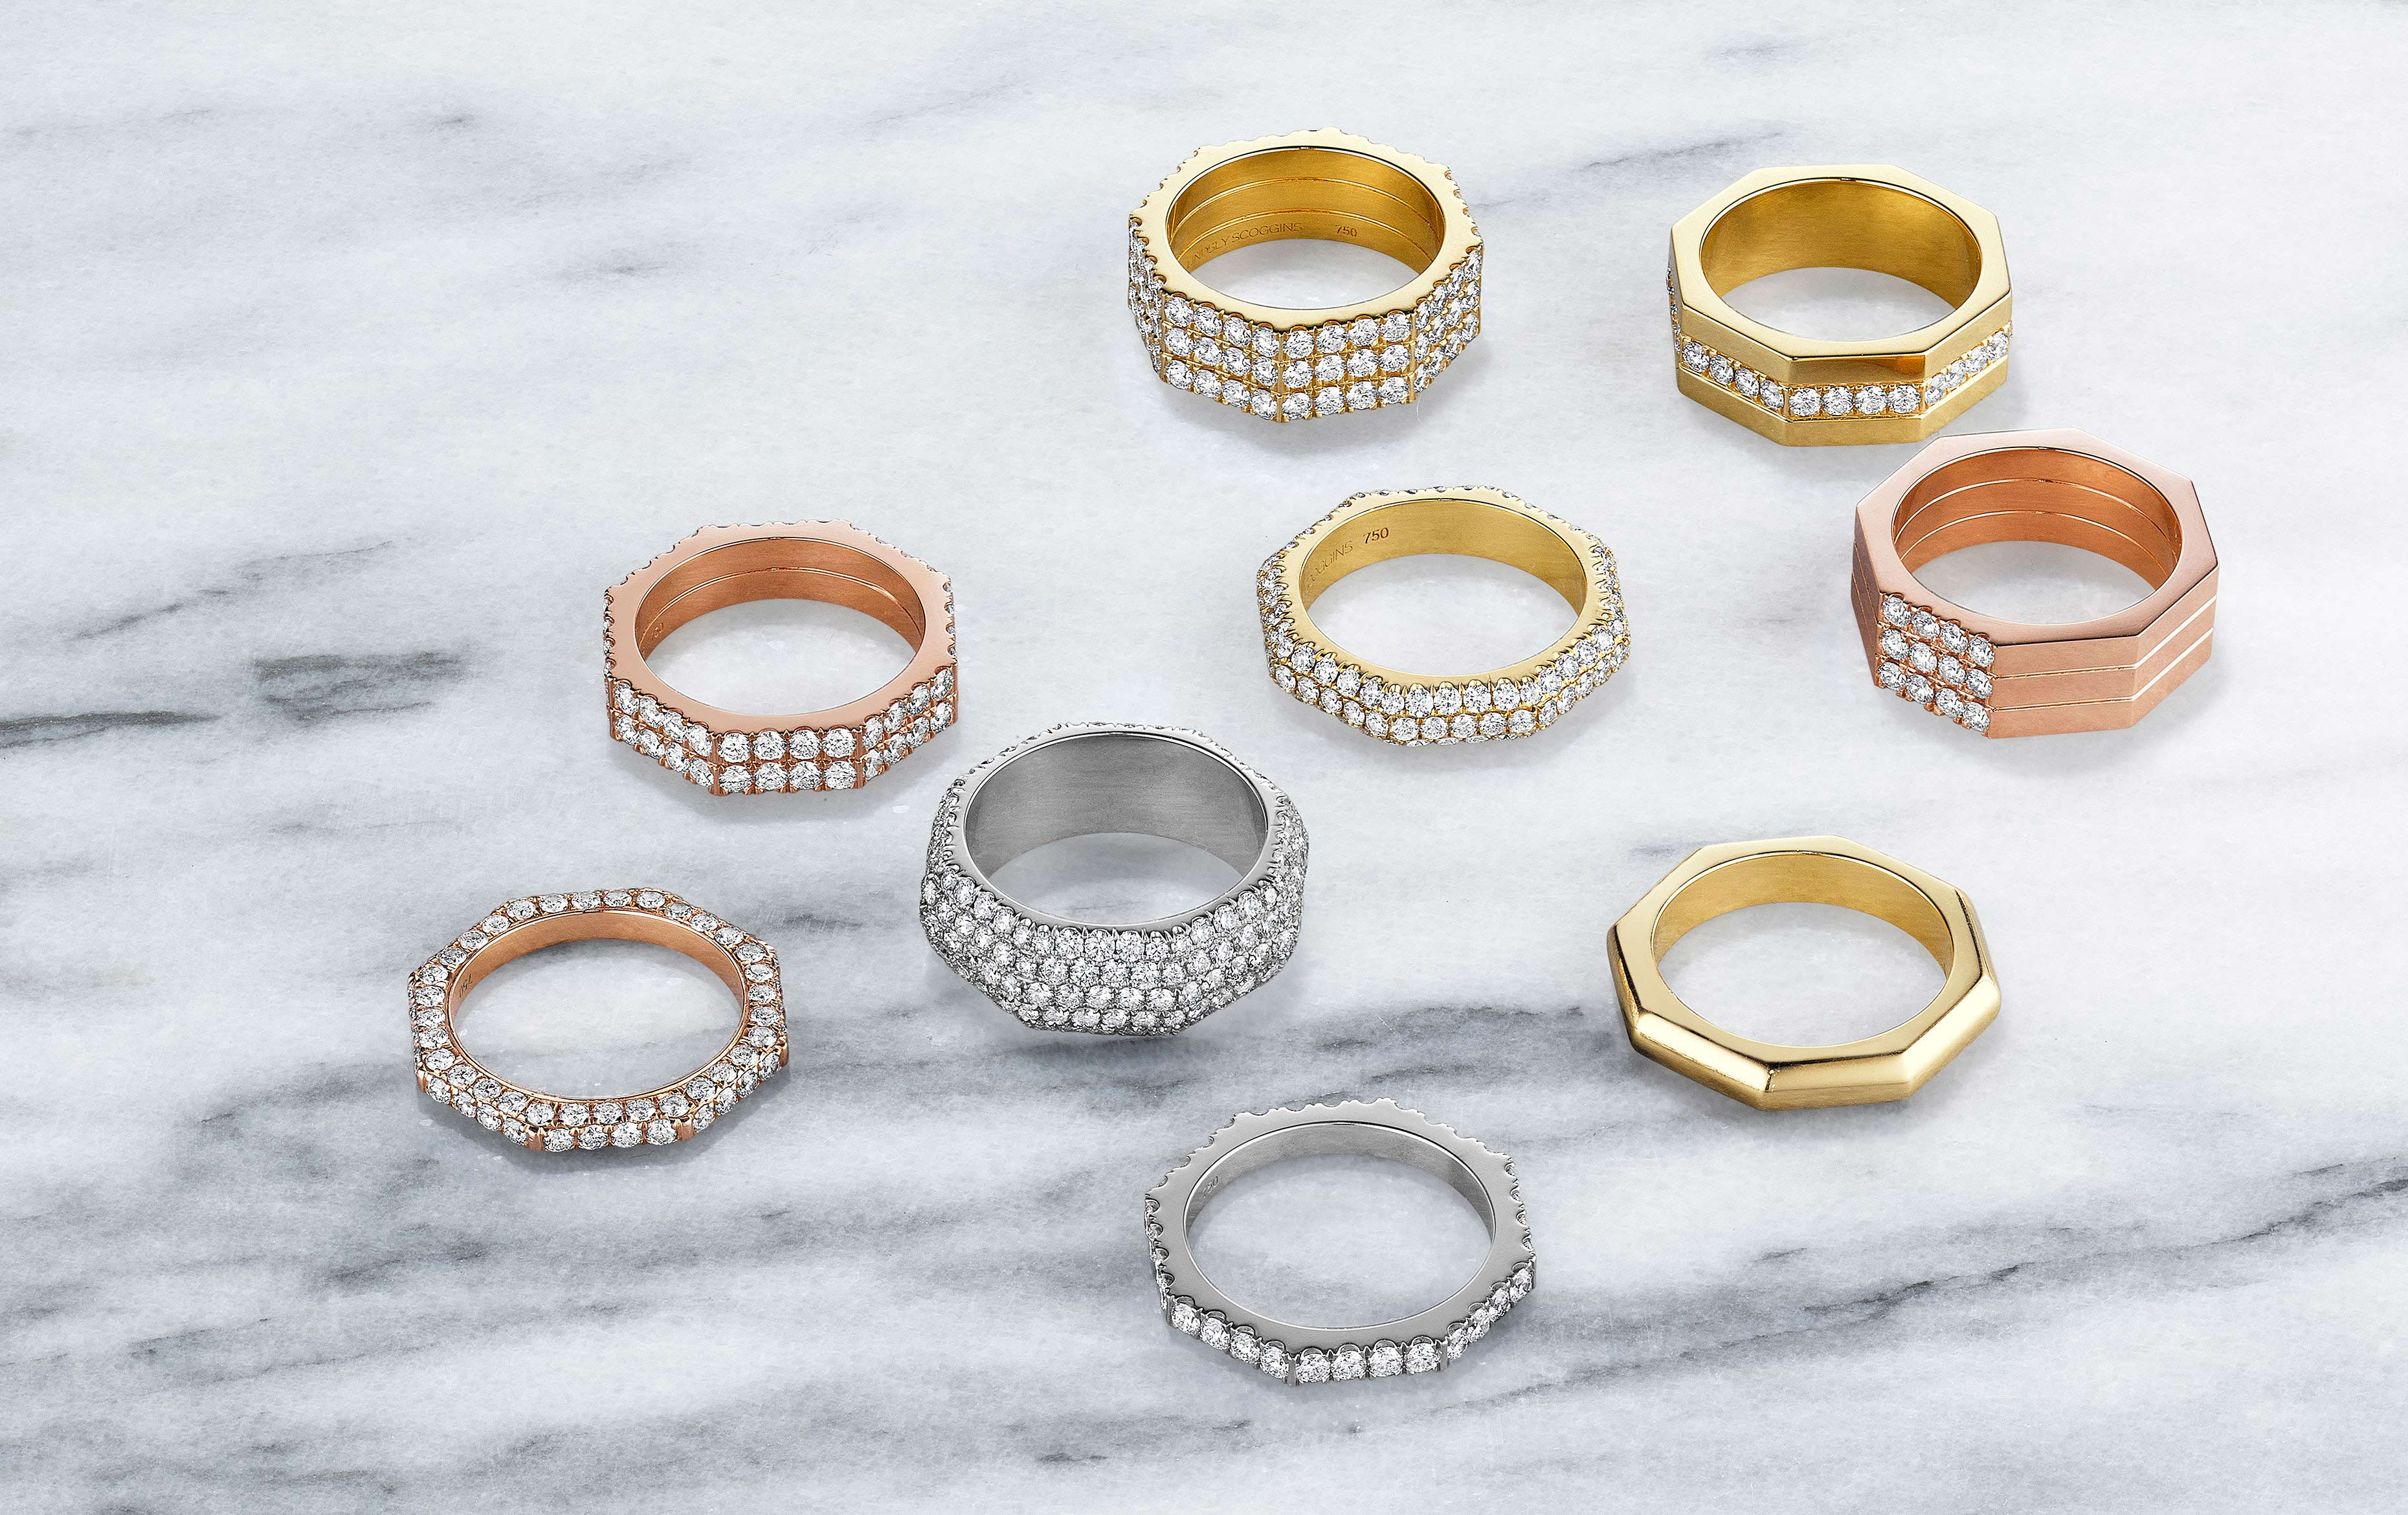 Jewelry Couture Lindsey Scoggins Pave Rings